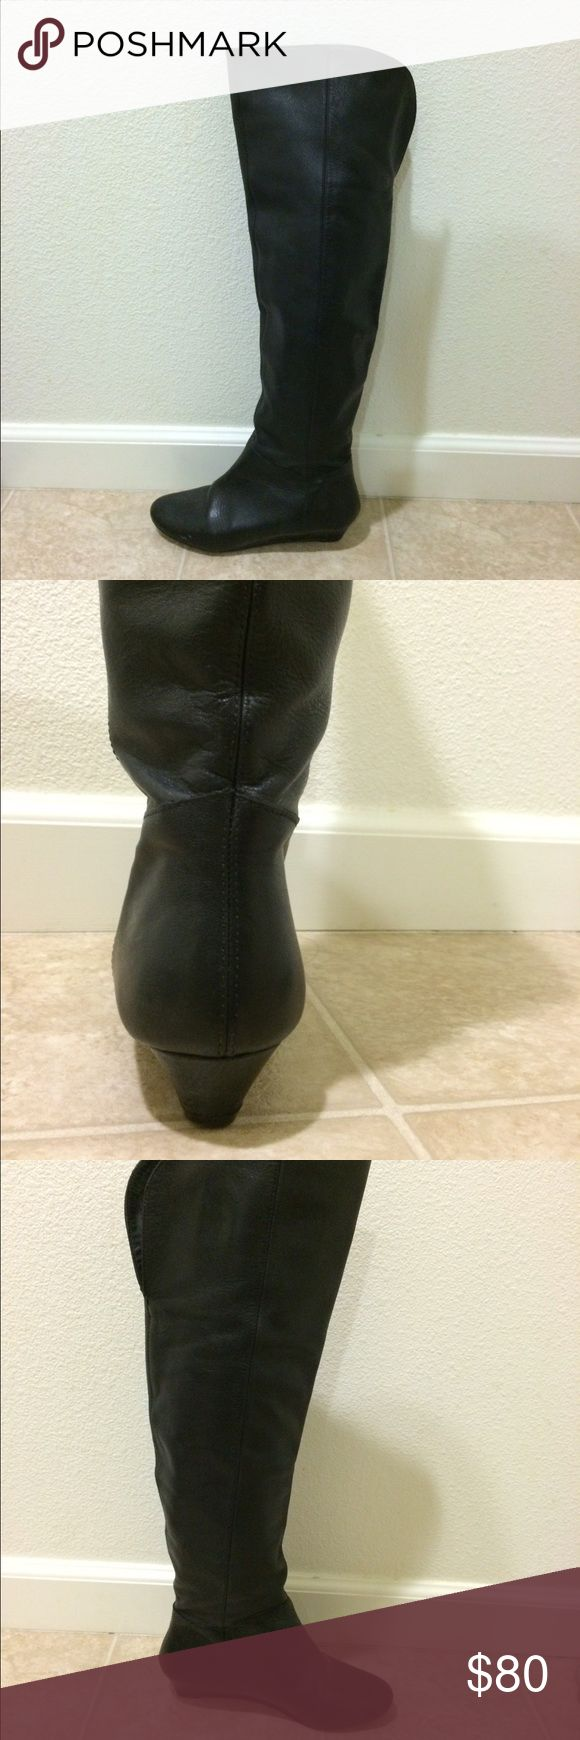 Steve Madden leather knee high boots Used black leather boots. In good condition. Wedge heel. You can fold the top down for a different look. No cracks, no holes, no tears, minimal scuff. Just needs a little TLC. Size 5.5M Steve Madden Shoes